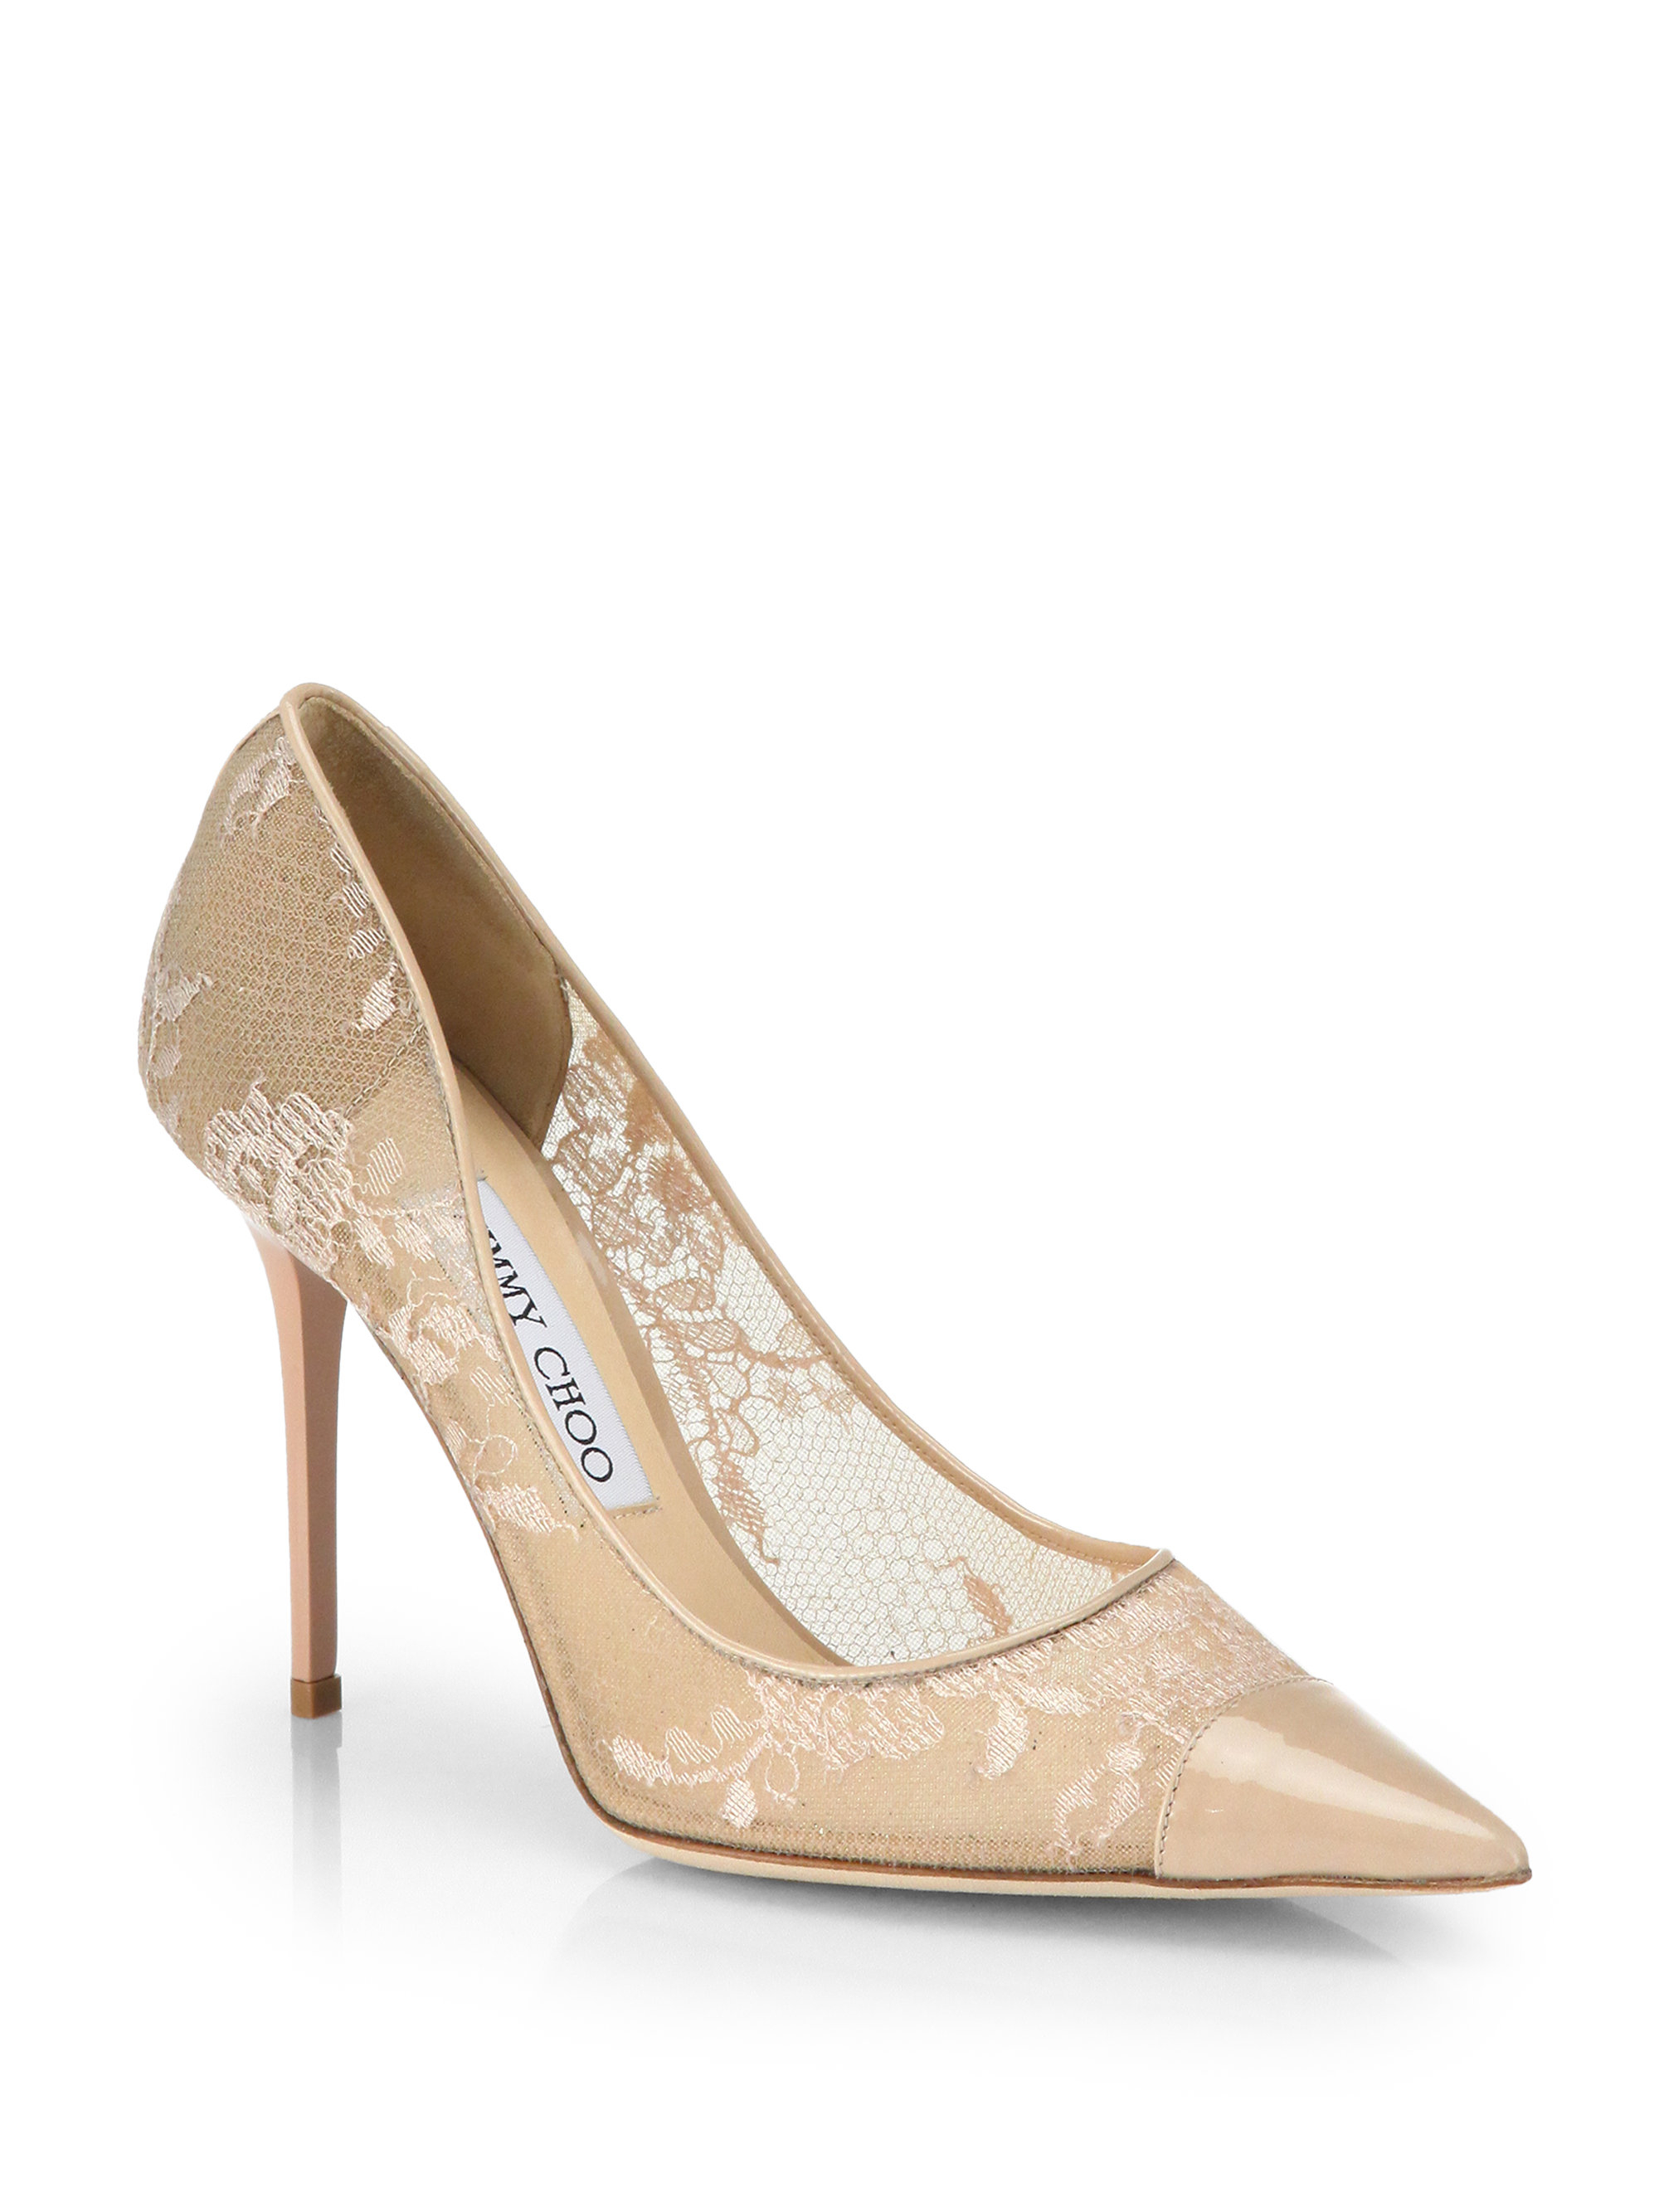 186f0408854 Jimmy Choo Amika Patent Leather Lace Pumps in Beige (NUDE .